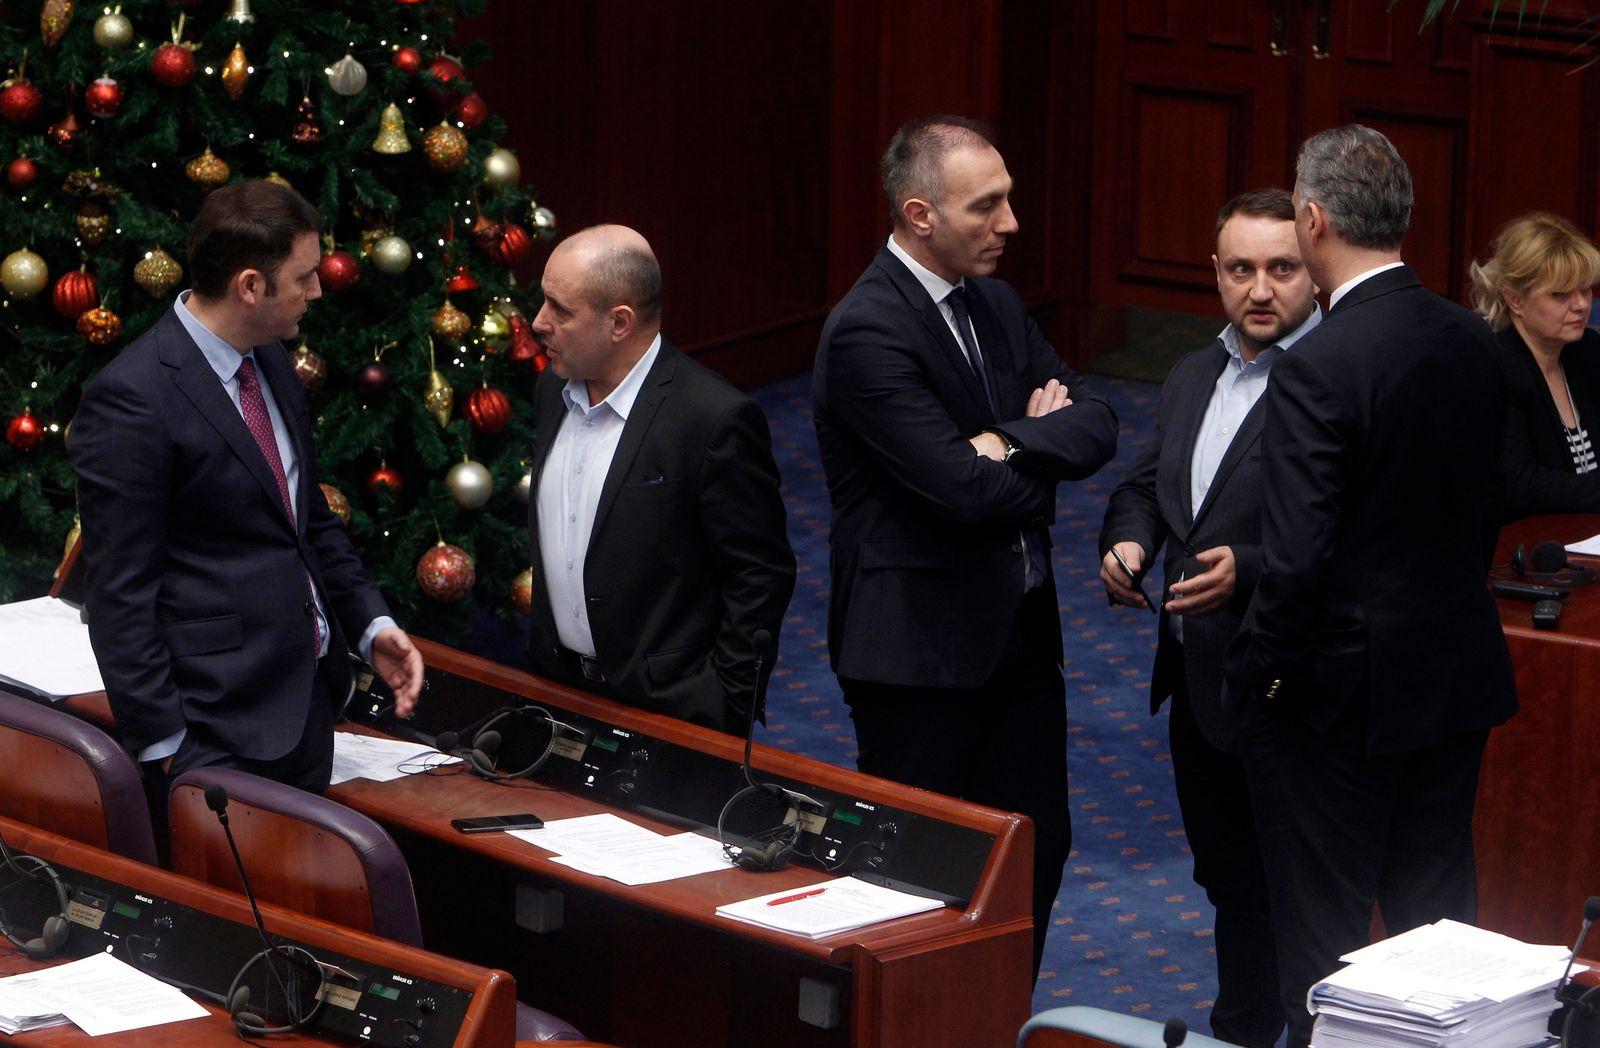 Lawmakers talk between themselves before a session of the Macedonian Parliament in the capital Skopje, Wednesday, Jan. 9, 2019. (AP Photo/Bor